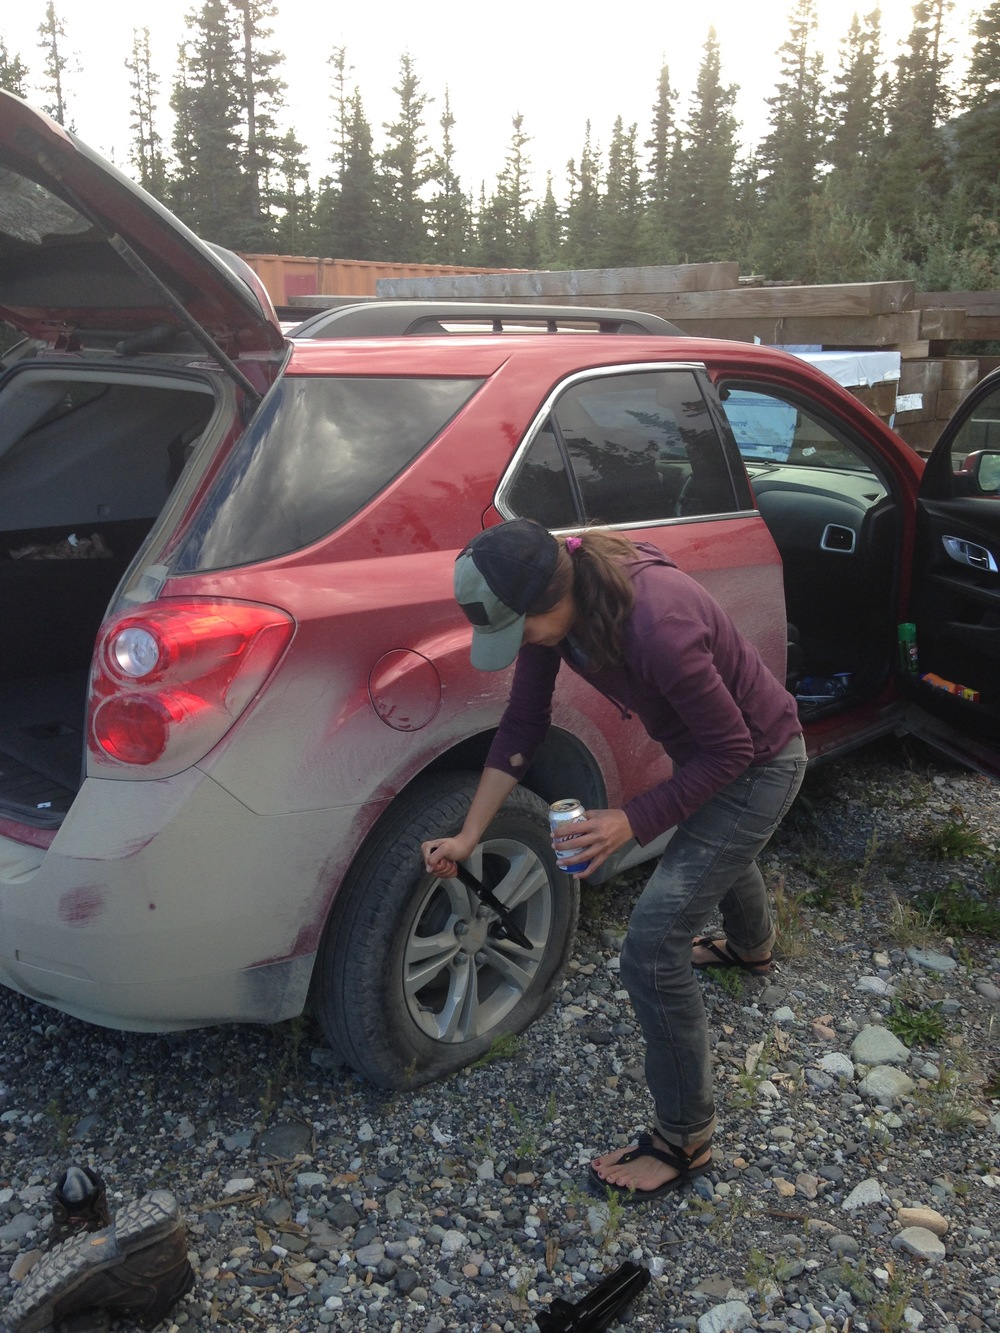 I'm so good at changing tires. An important part of being a botanist.